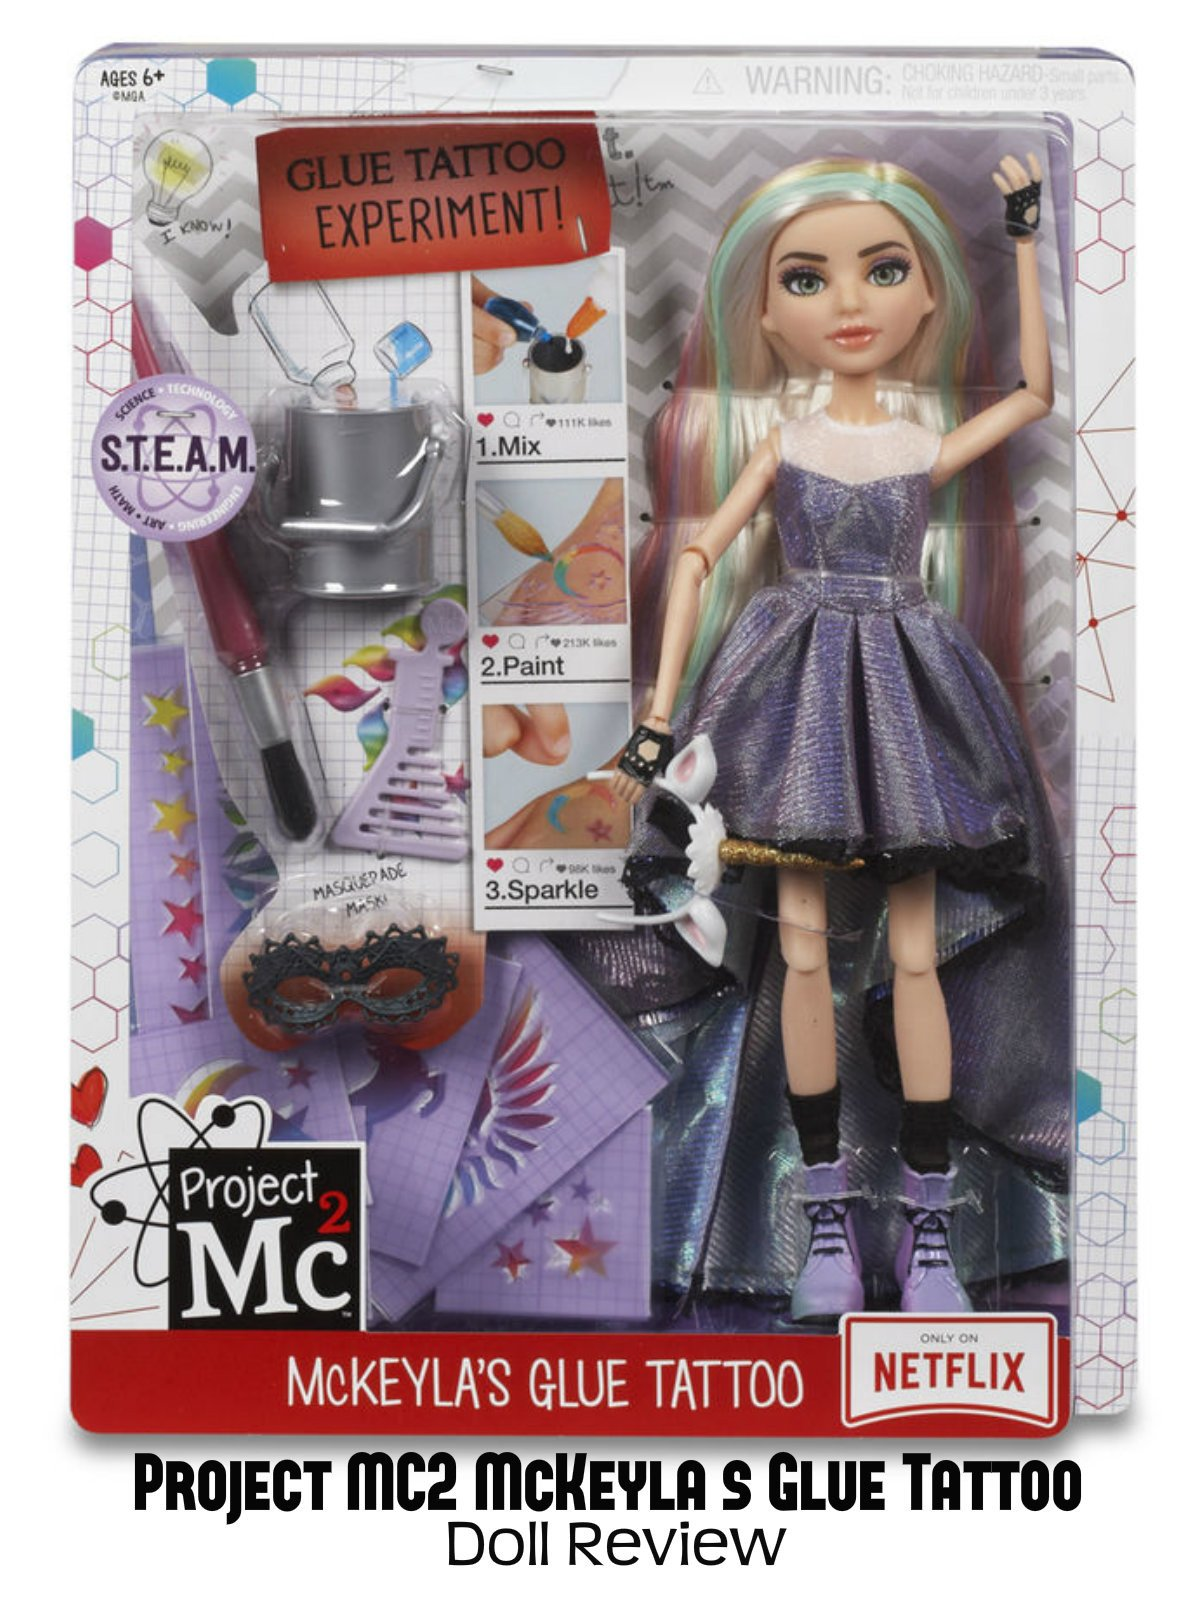 Review: Project MC2 McKeyla's Glue Tattoo Doll Review